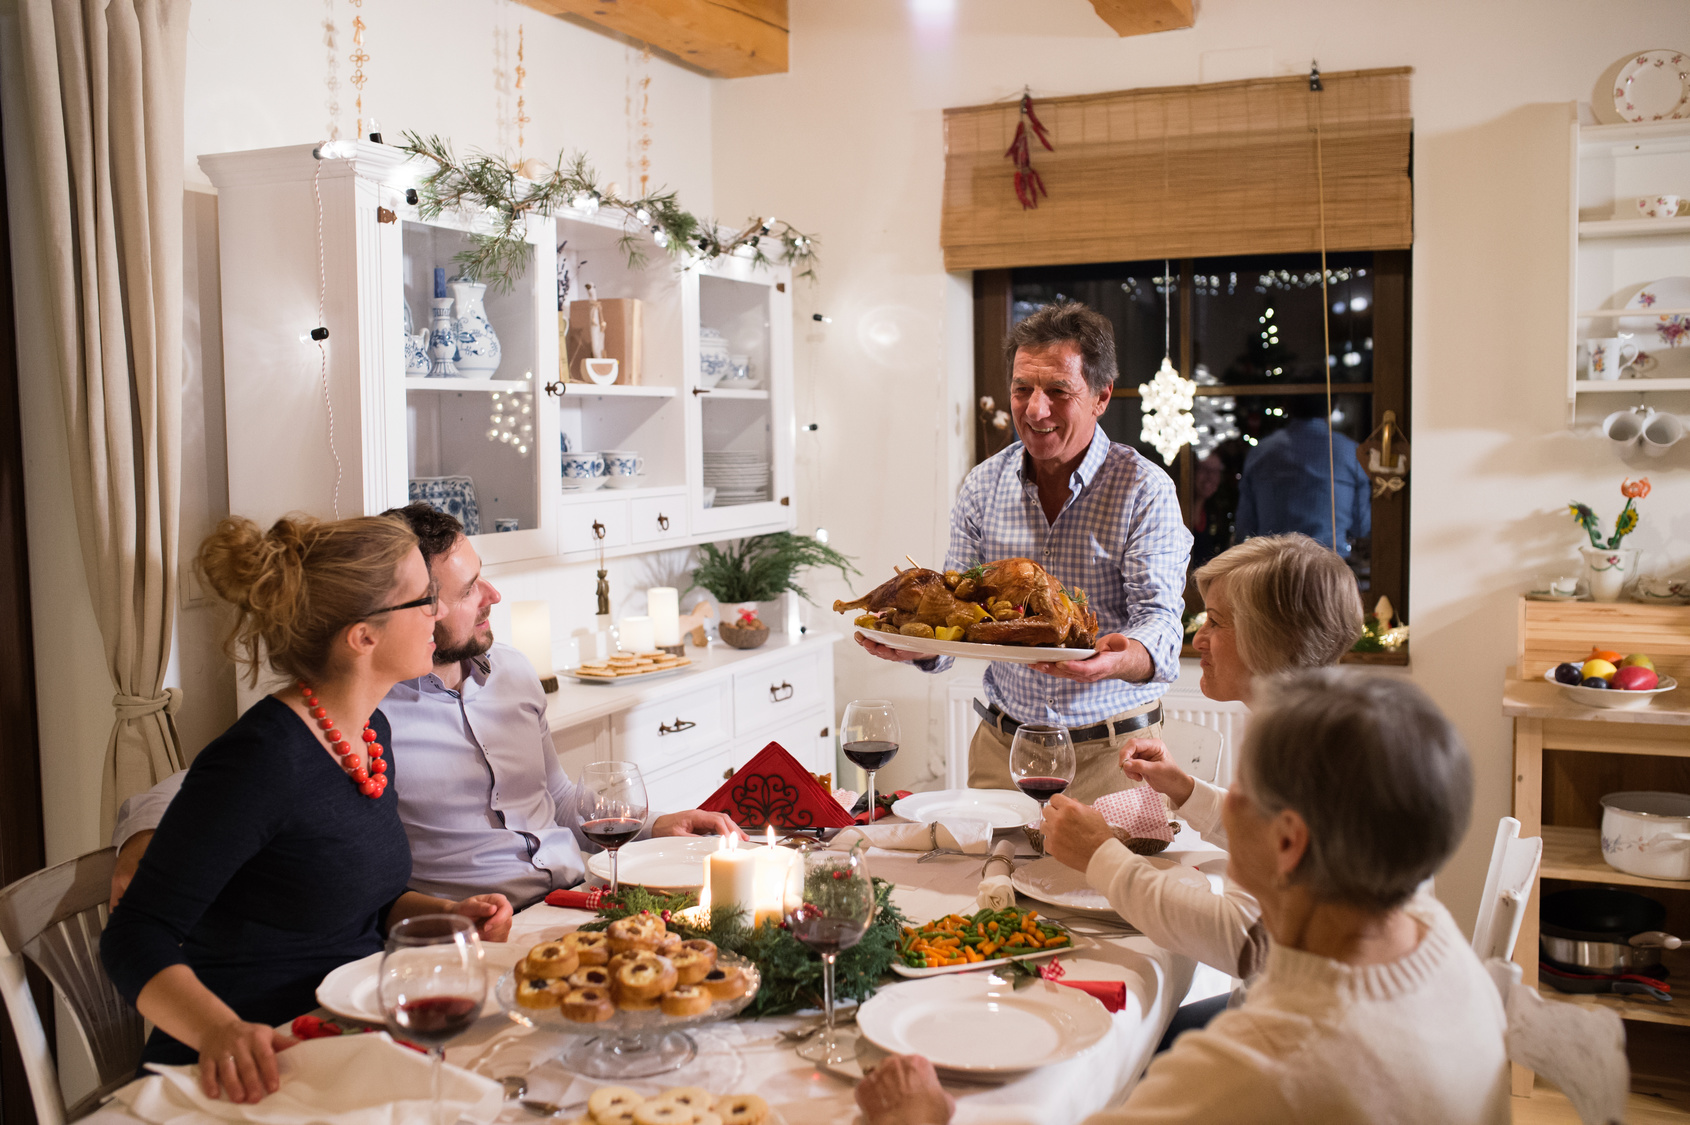 A time for sharing – gathering the family around the Christmas table with the perfect goose